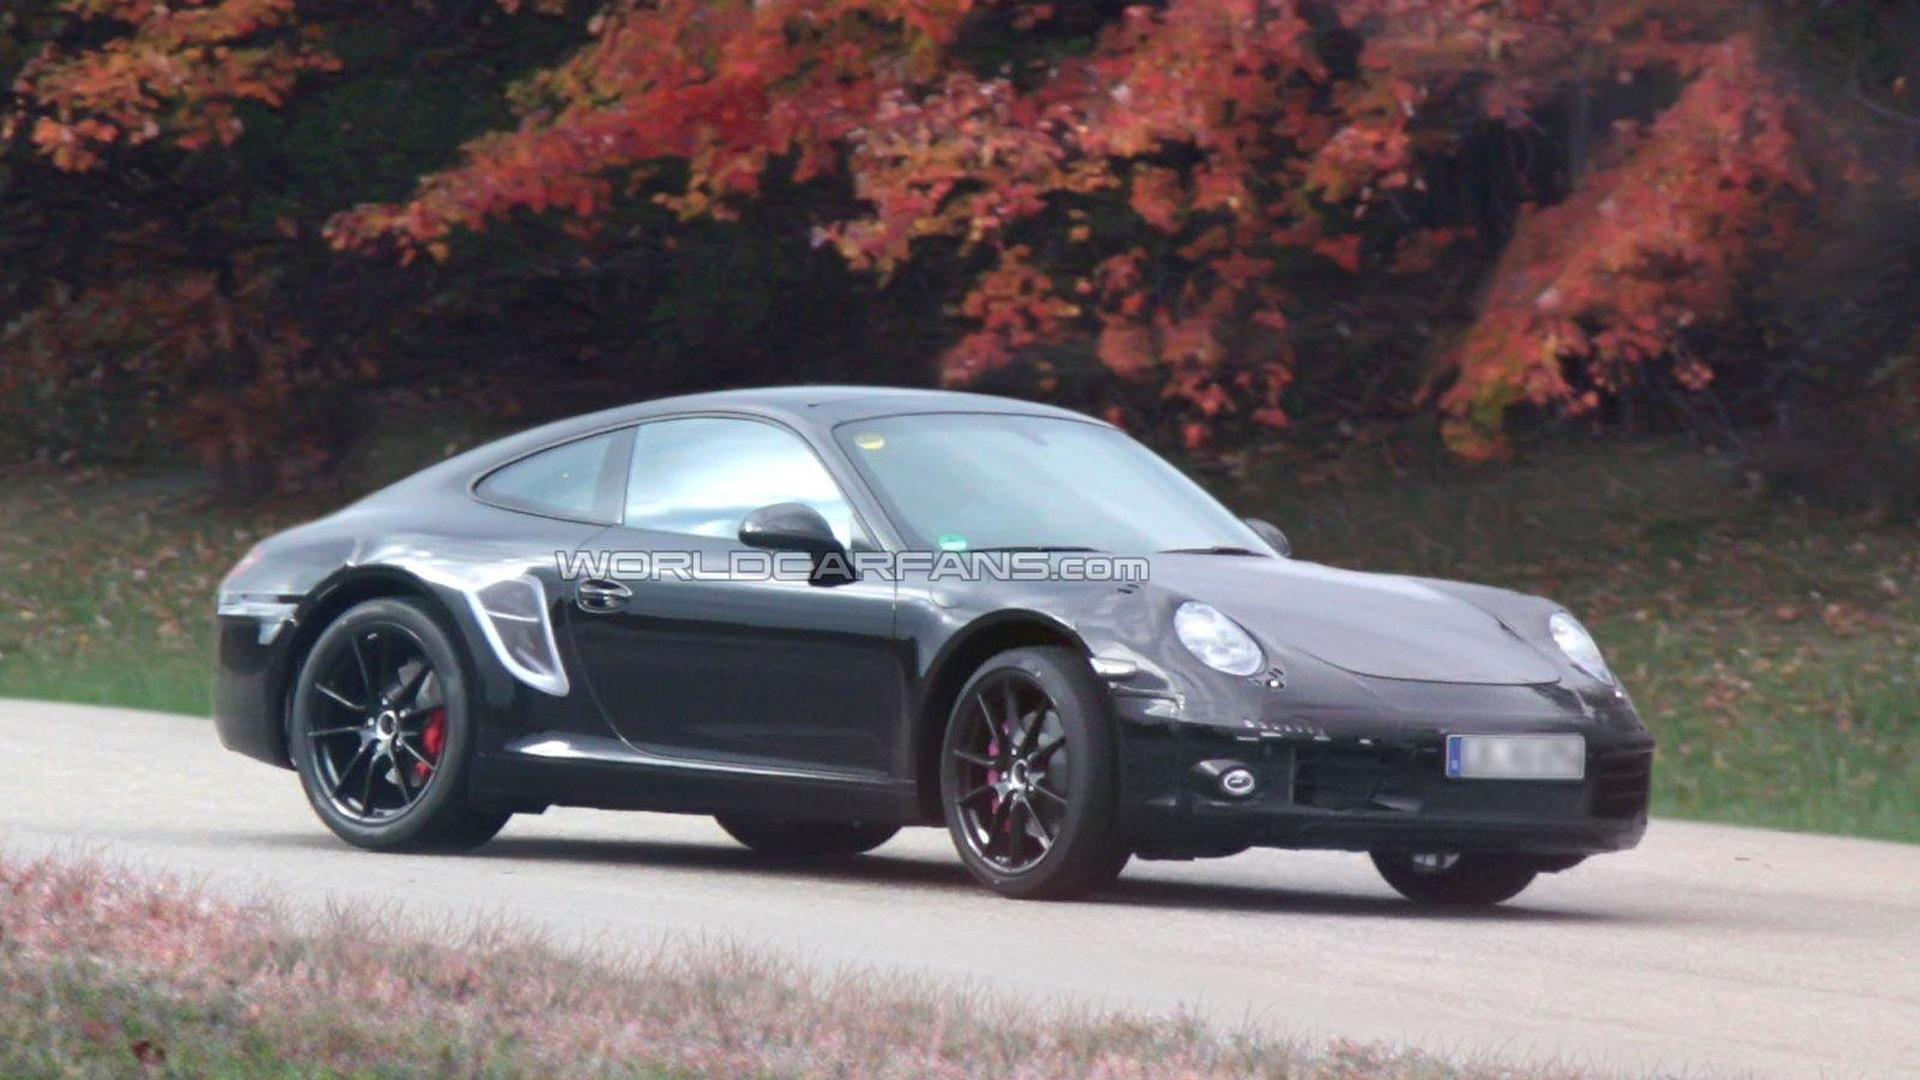 2012 Porsche 911 spied with less camo